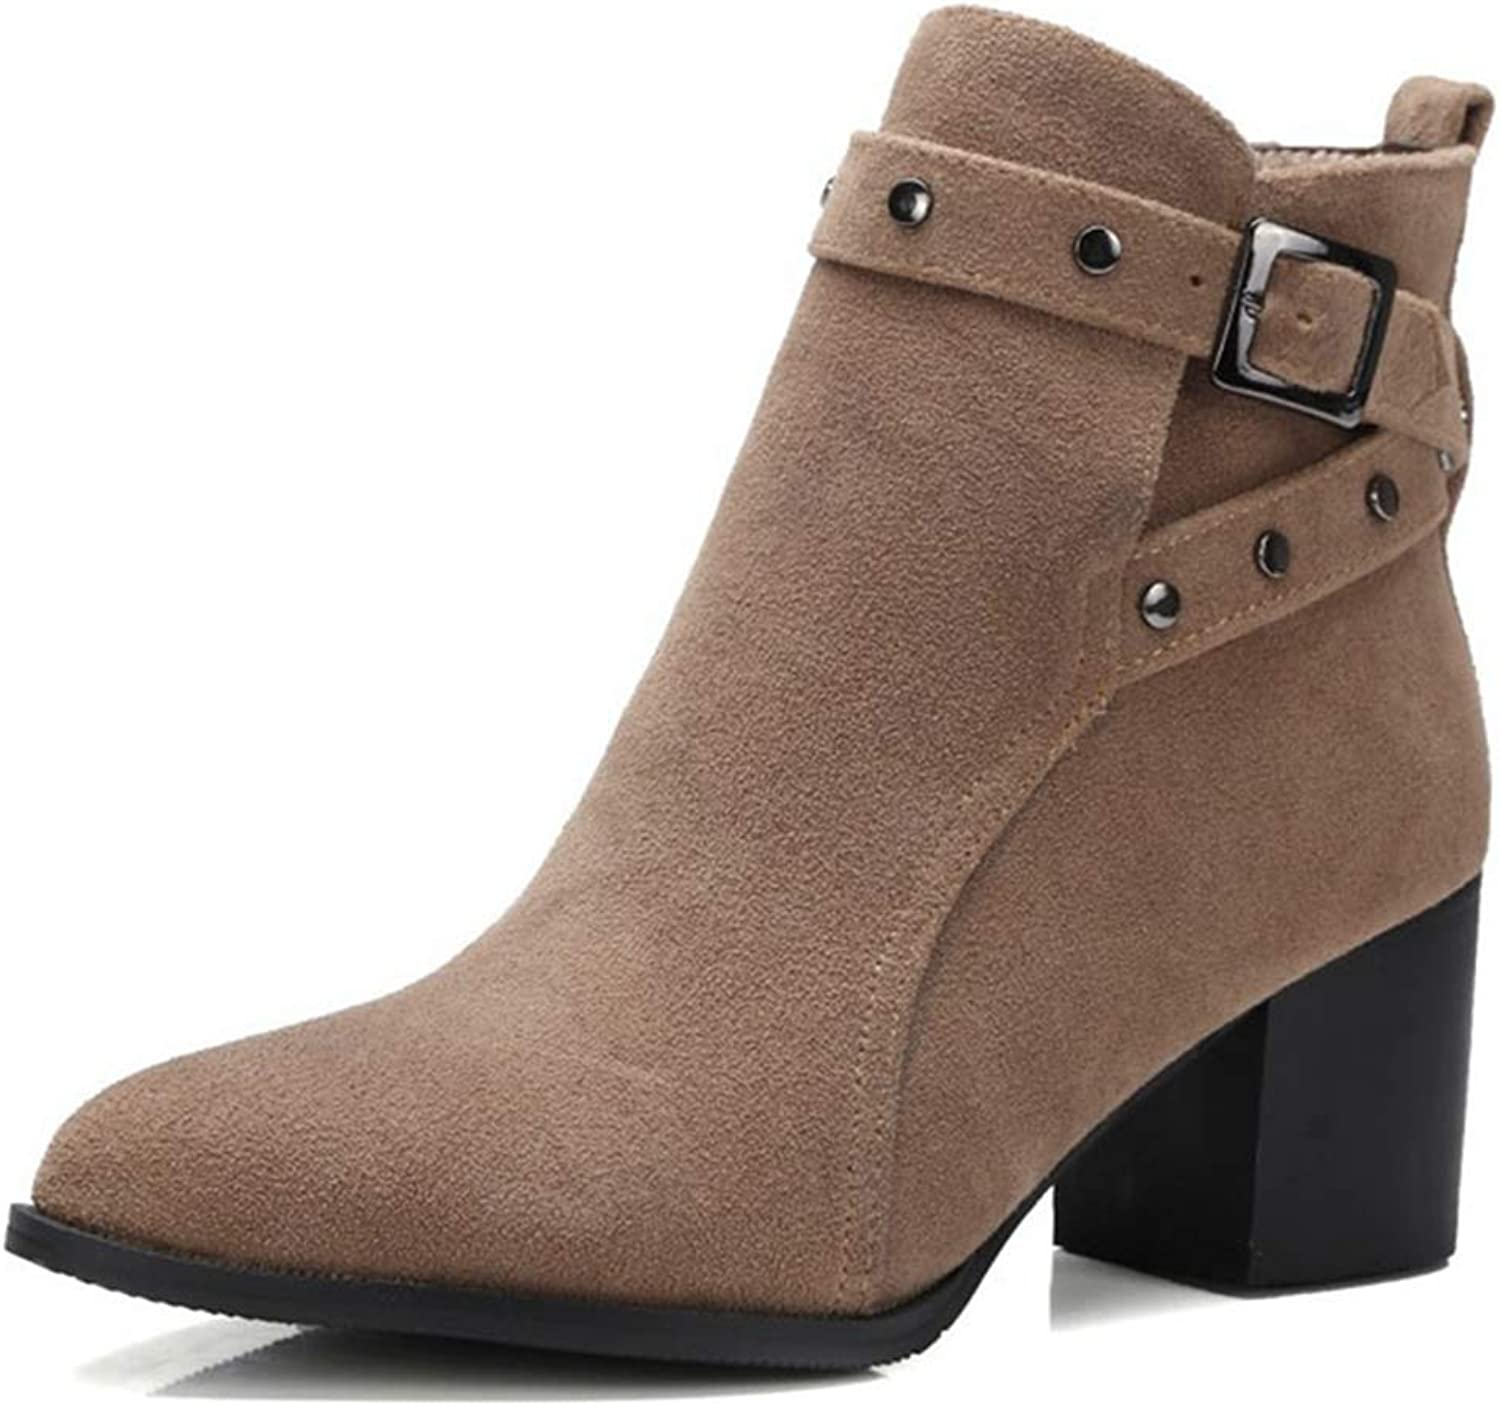 GIY Women's Pointed Toe Vegan Ankle Boots Buckle Strap Chunky Heel Slip On Booties Winter Warm Short Boot